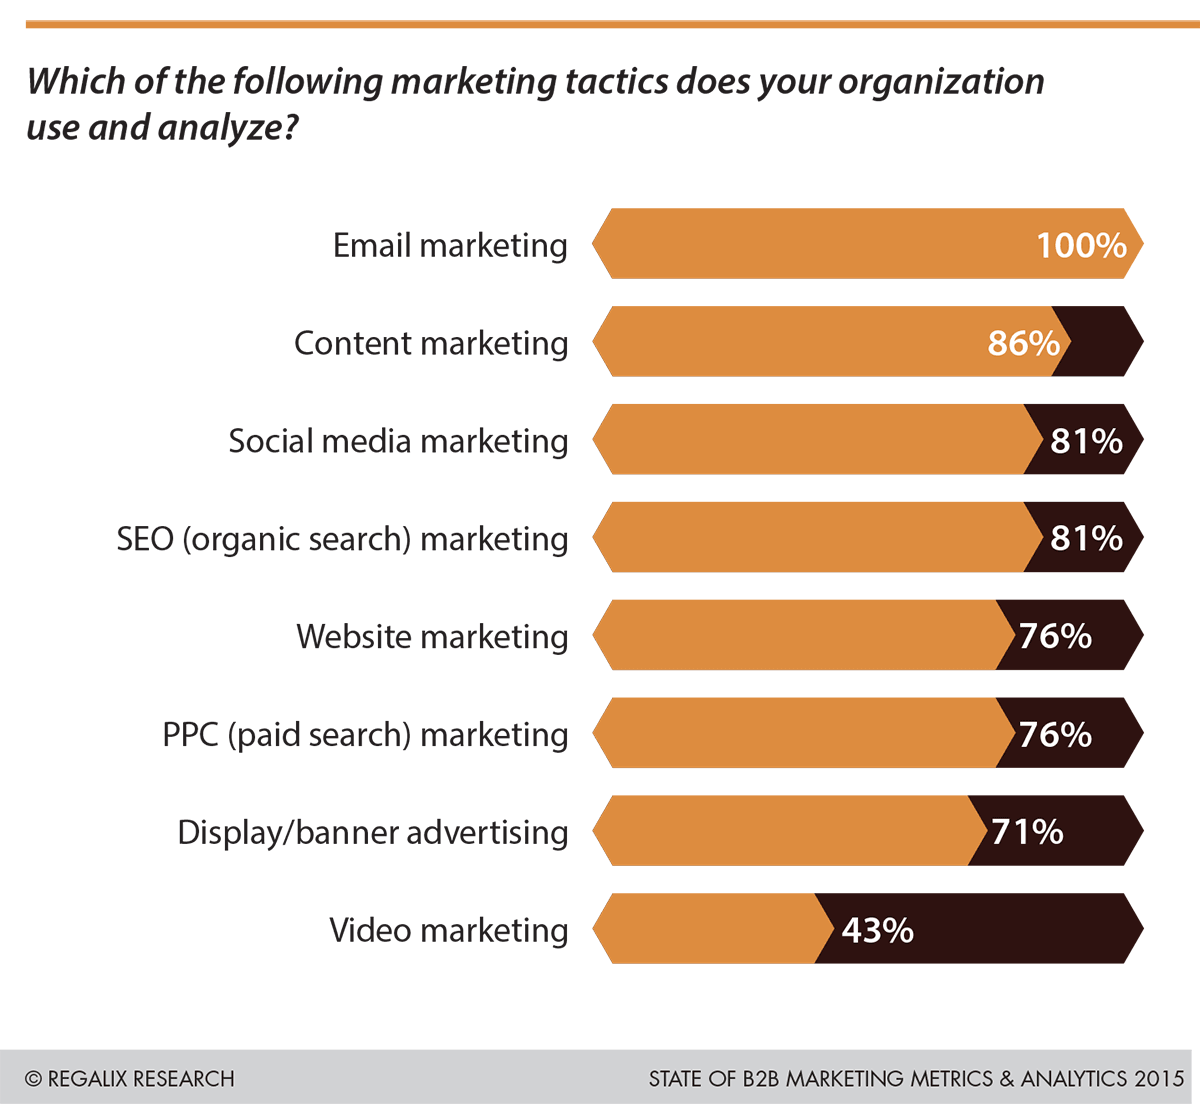 B2B-email-marketing-statistics-Regalix100PercentB2BMarketersUseEmailMarketing